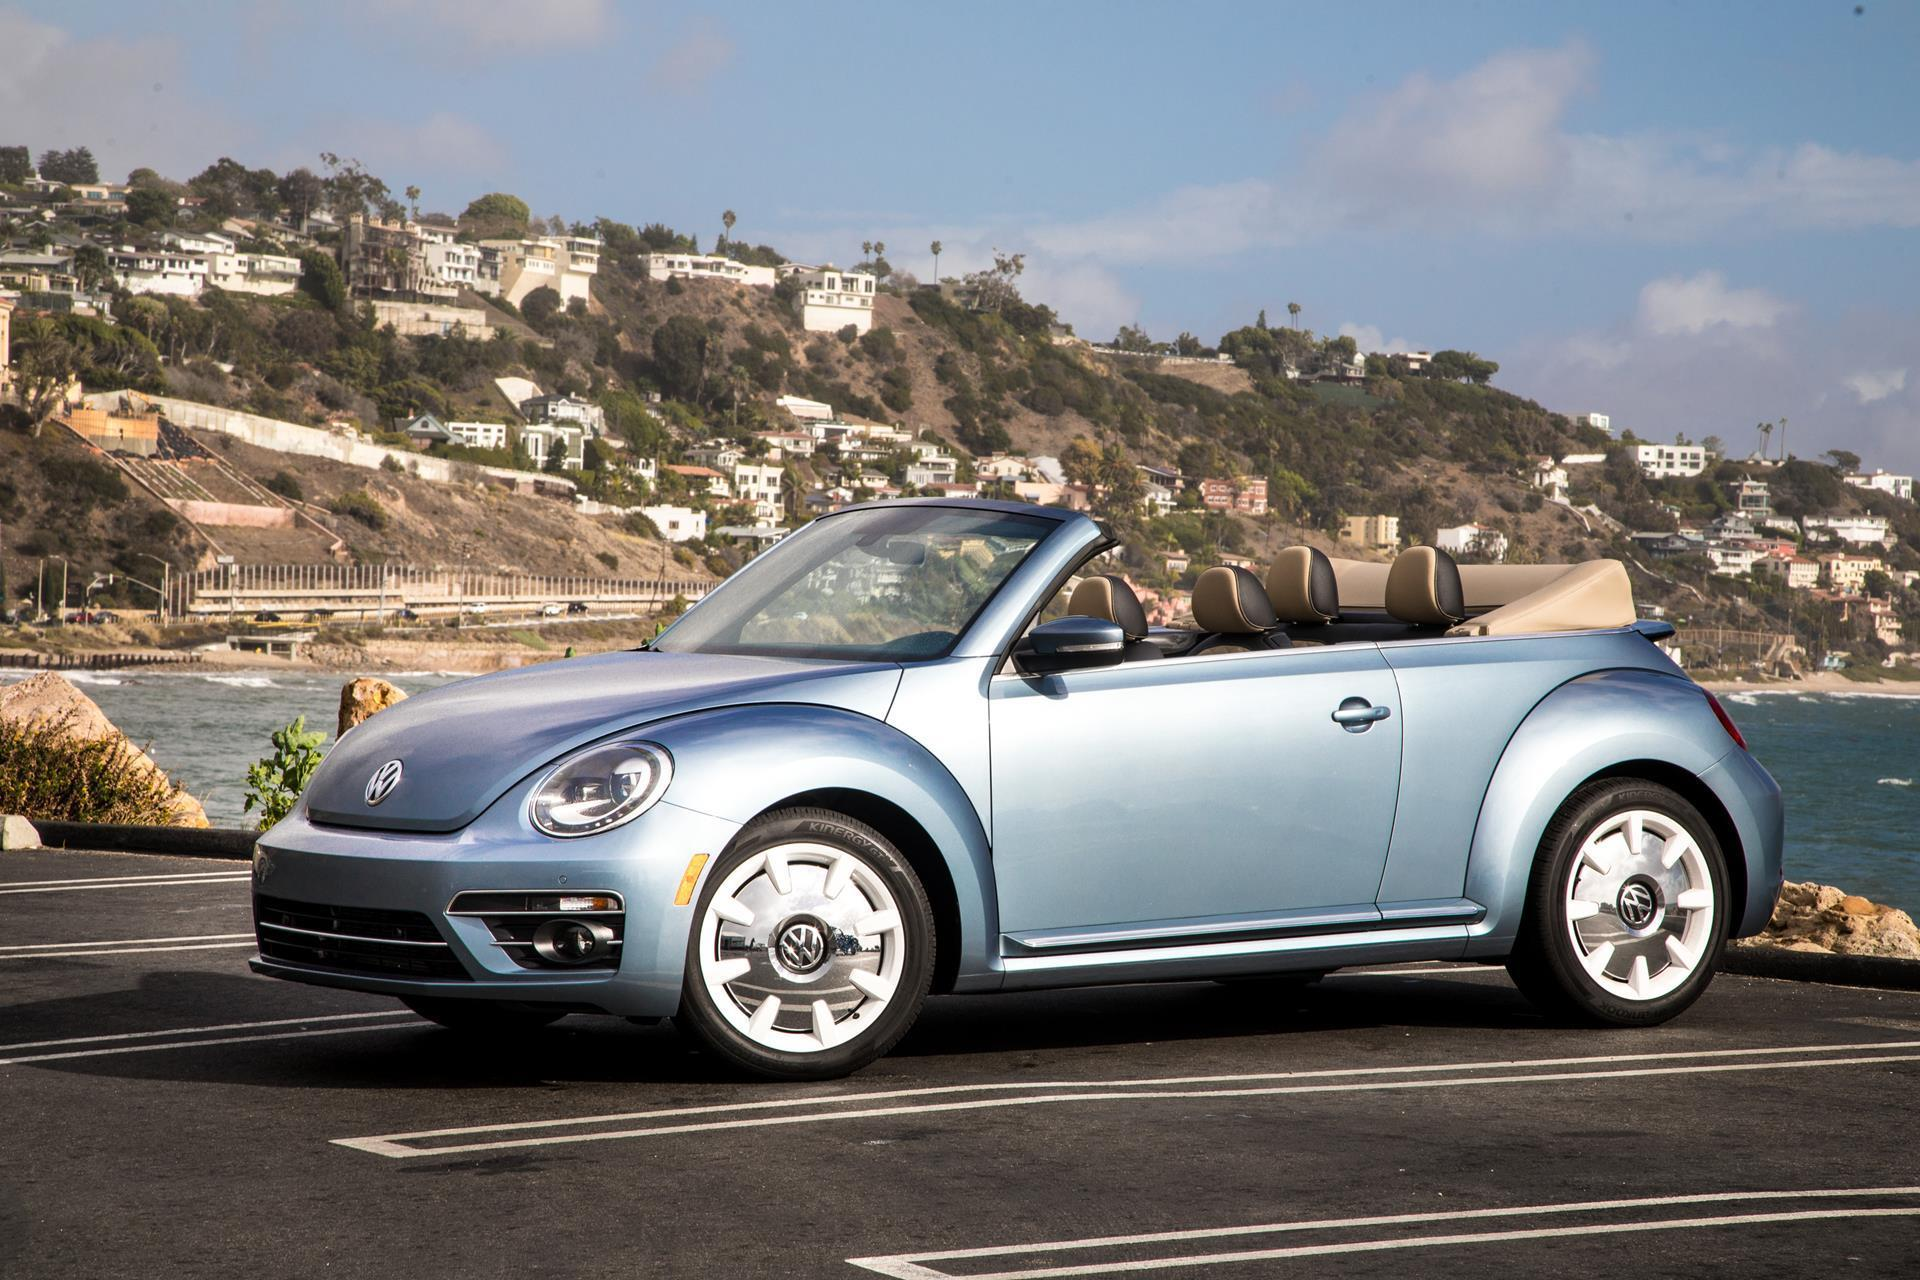 2019 Volkswagen Beetle News and Information